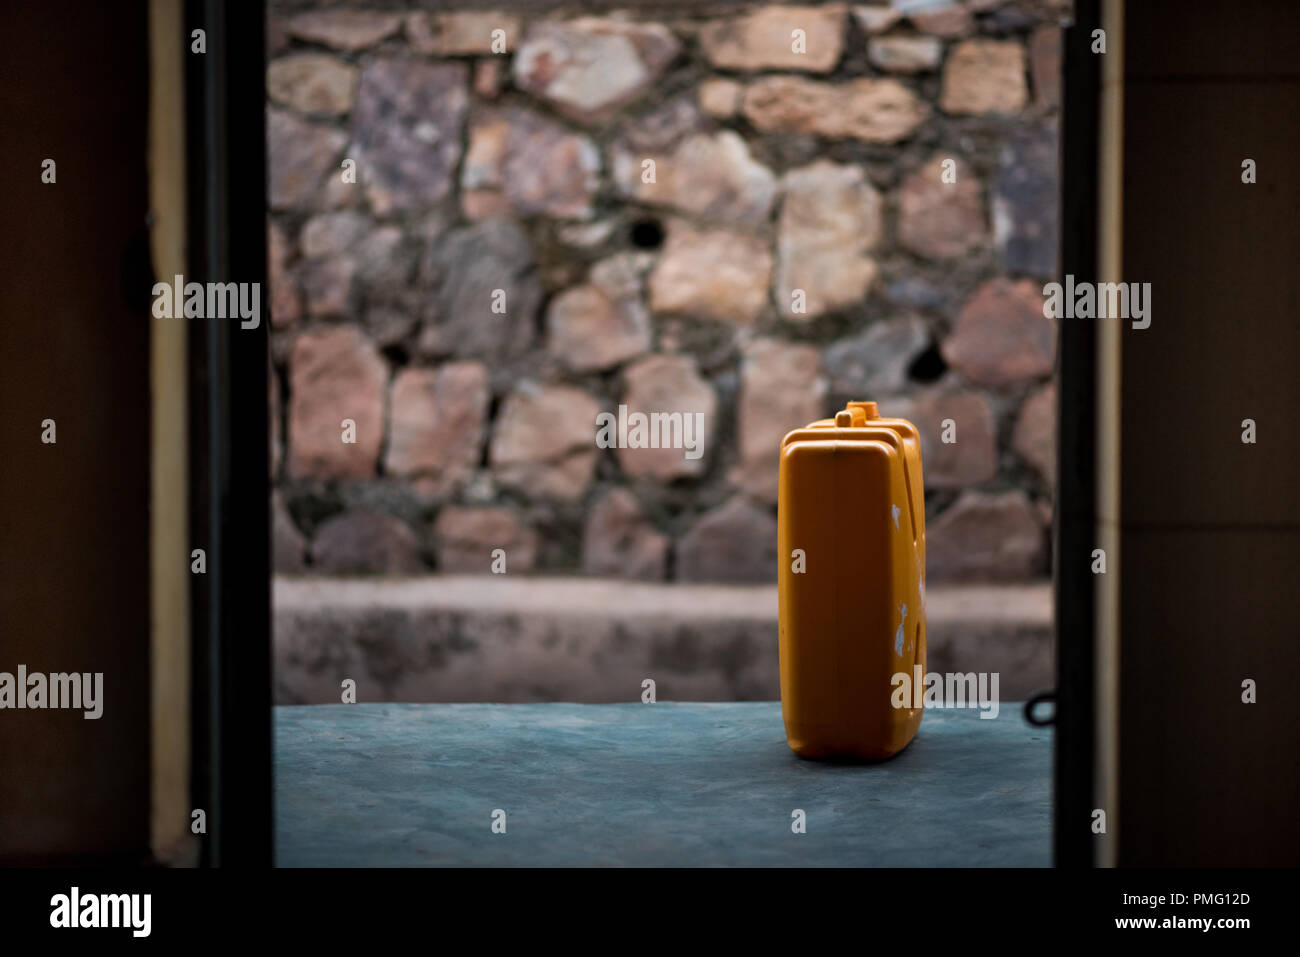 A single jerrycan on a porch, viewed through the doorway of a house in Nyamirambo, an outlying suburb of Kigali, Rwanda - Stock Image